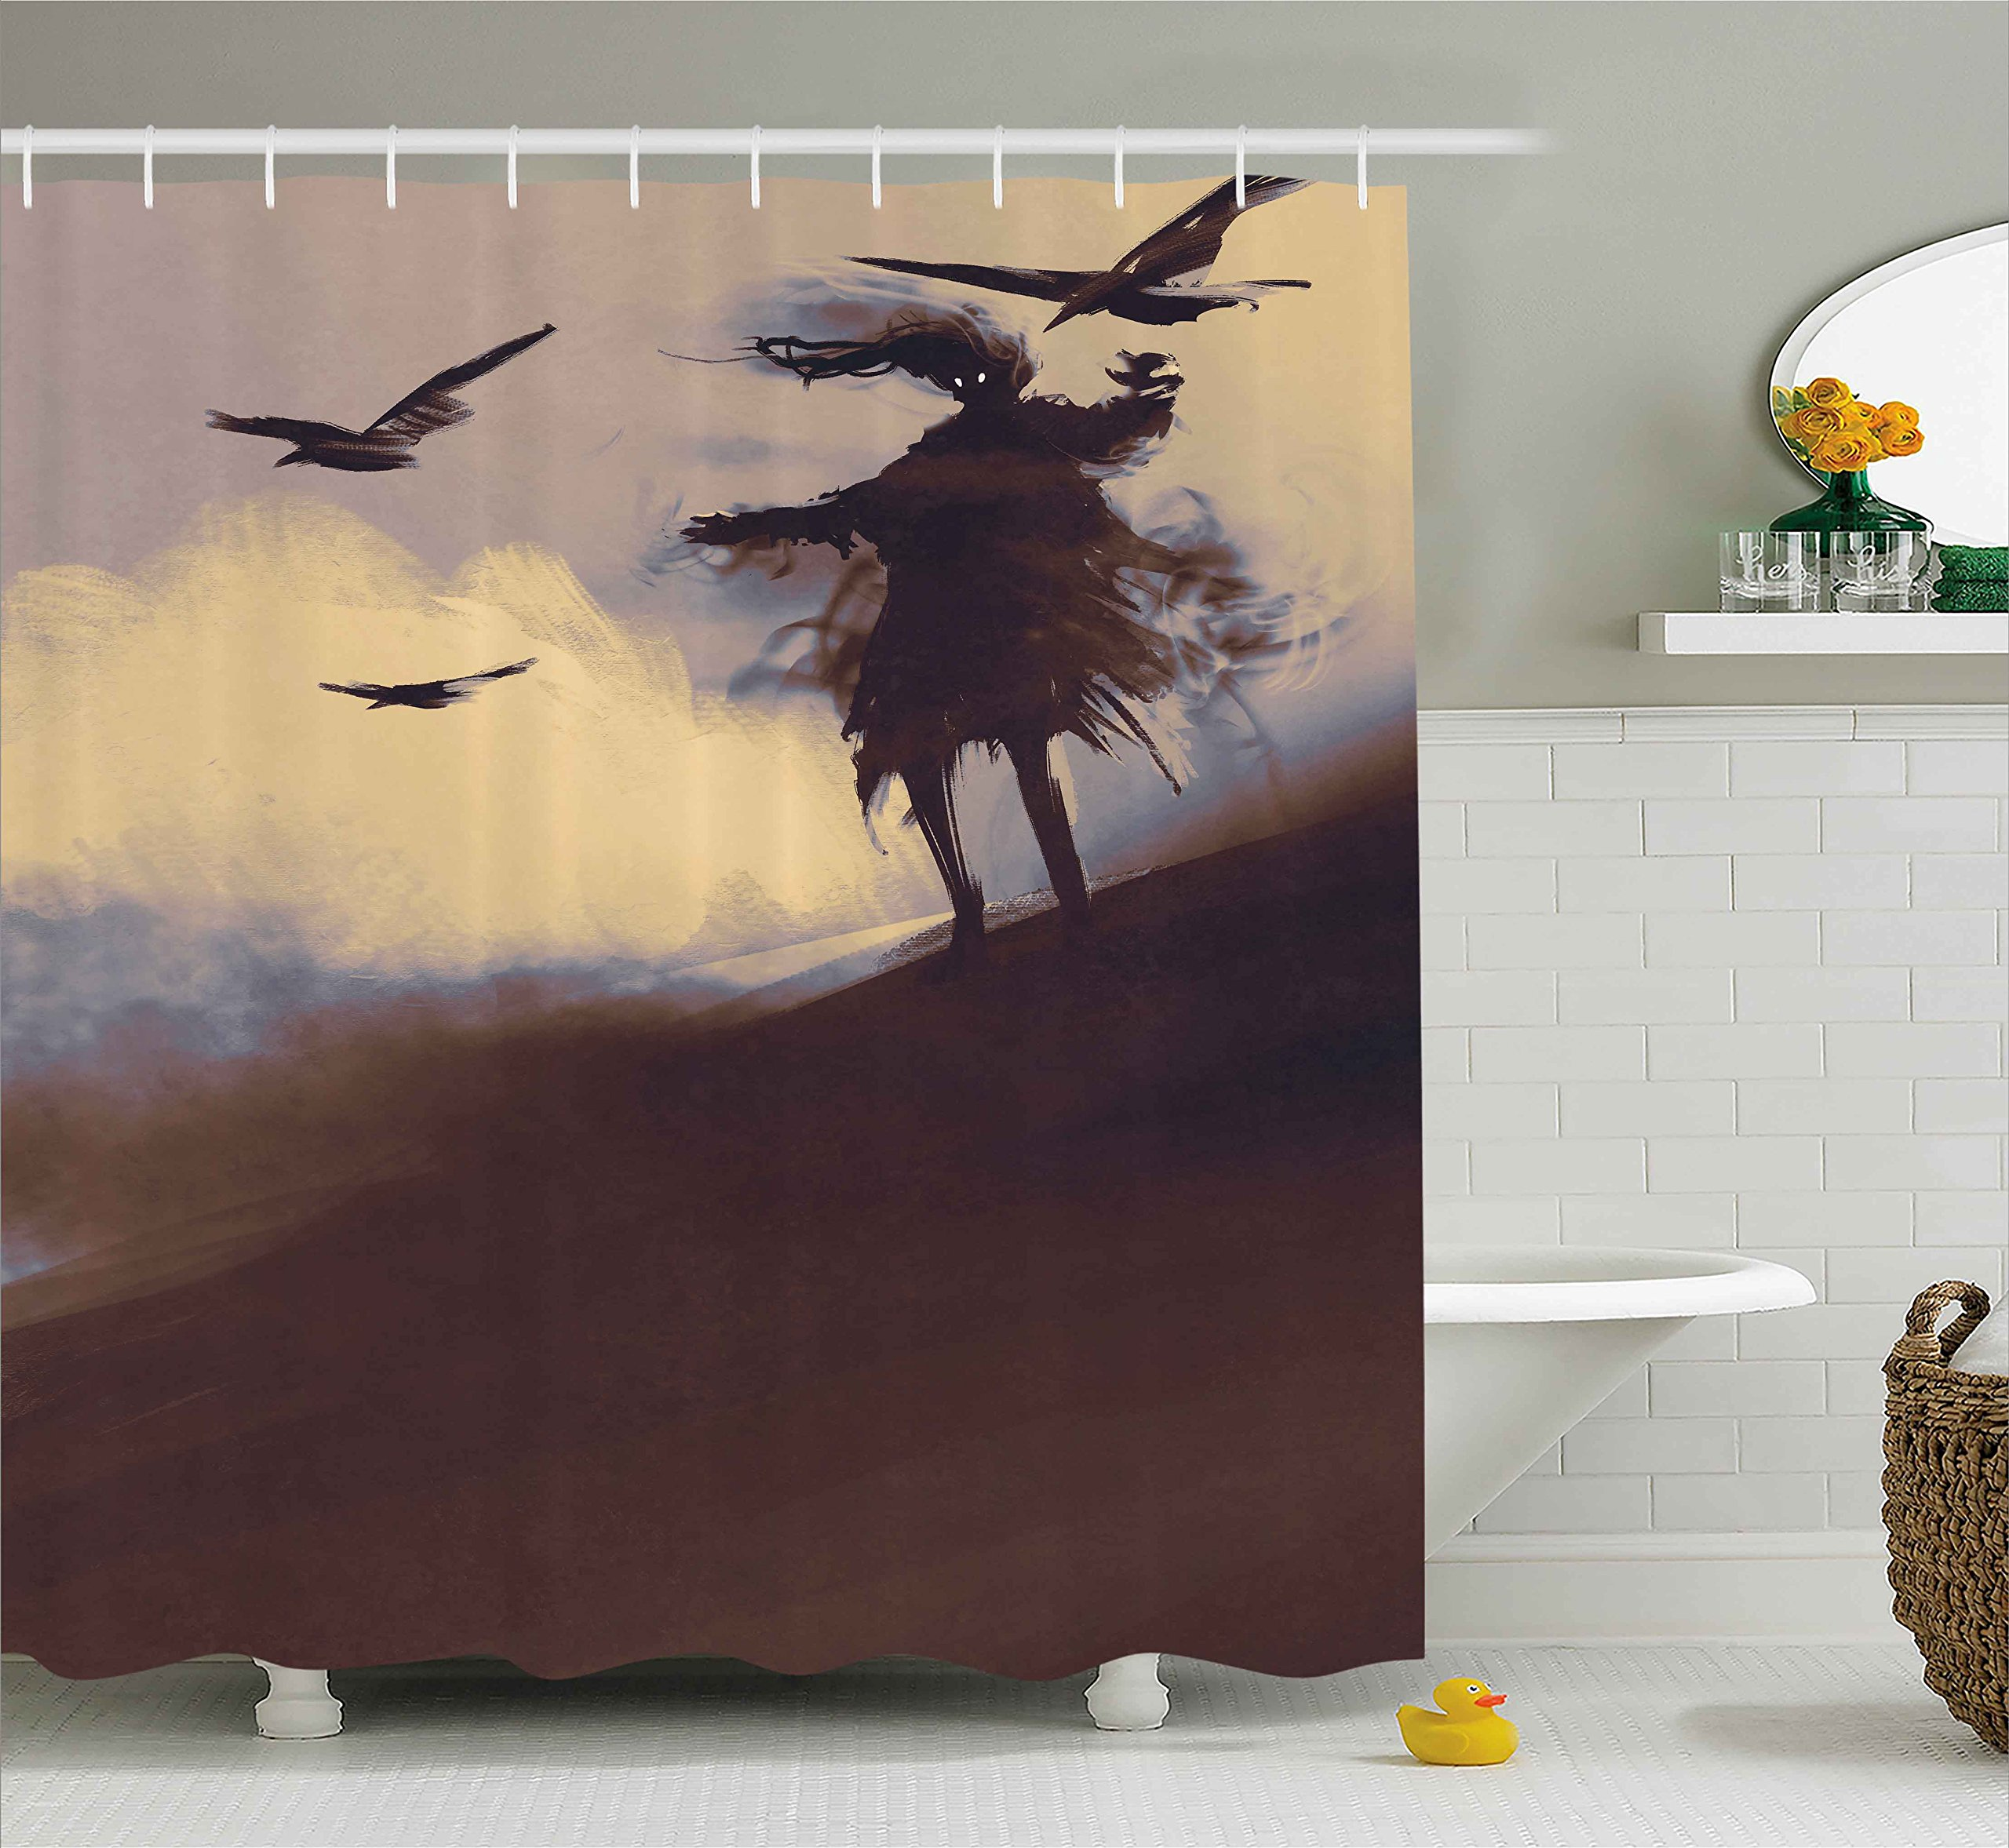 Ambesonne Horror Shower Curtain, Dark Soul from a Scary Movie on The Hills with Clouds and Flying Crows Print, Fabric Bathroom Decor Set with Hooks, 75 inches Long, Brown Mauve Begie